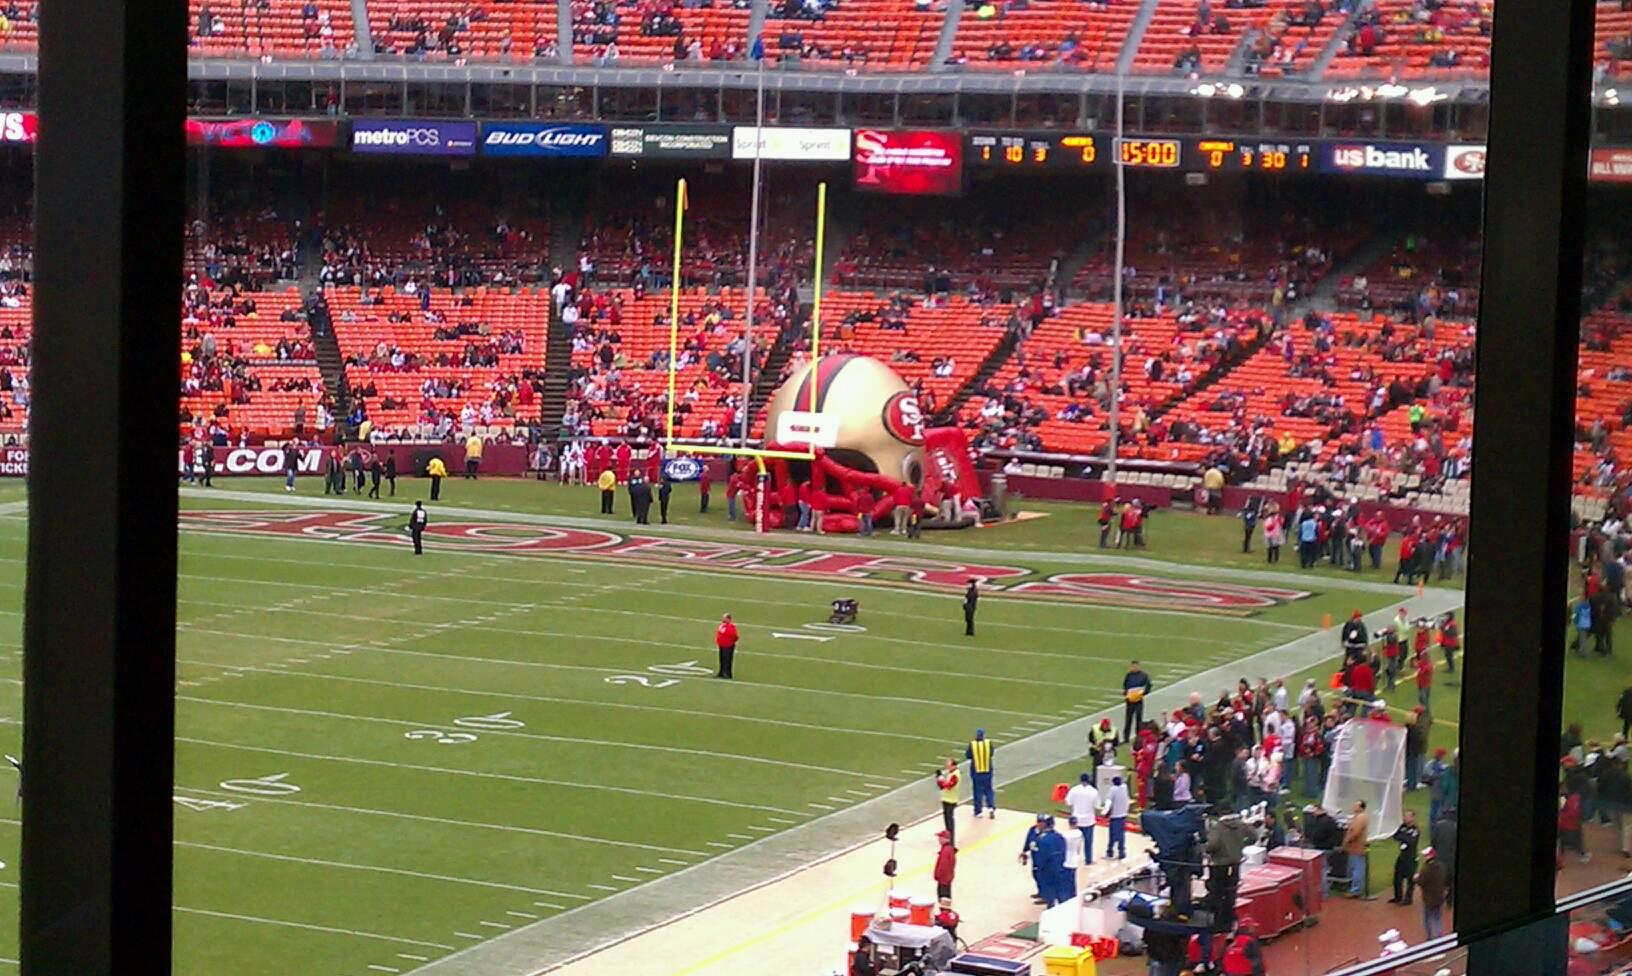 Candlestick Park Section 71 Row box Seat 6